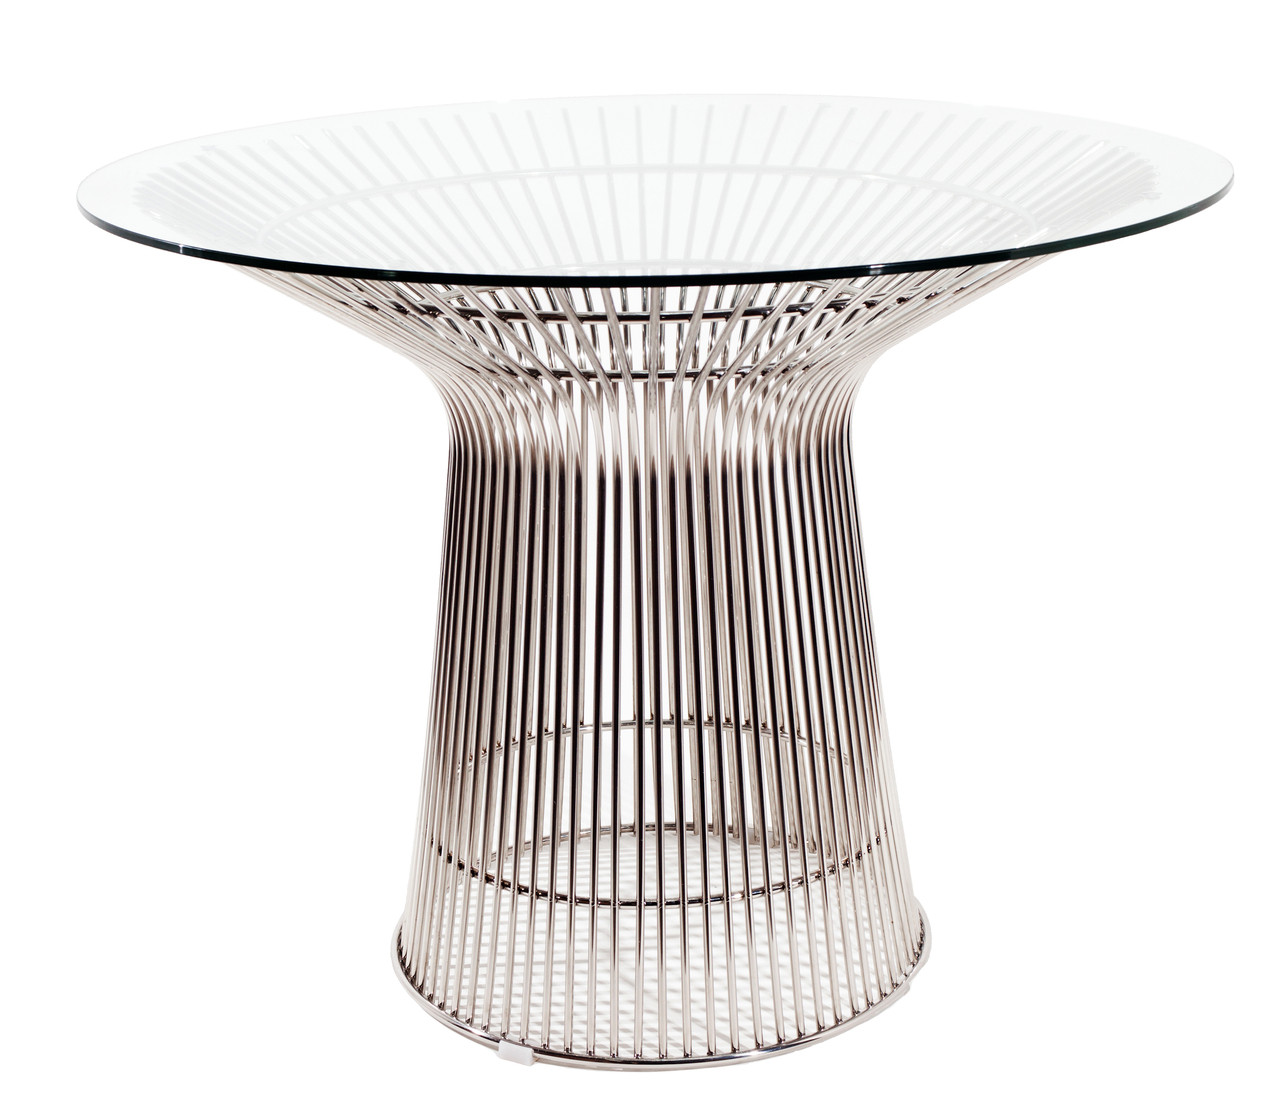 Replica Warren Platner - Wire Dining Table - Stainless Steel - Glass Top - 100cm, 120cm, 140cm